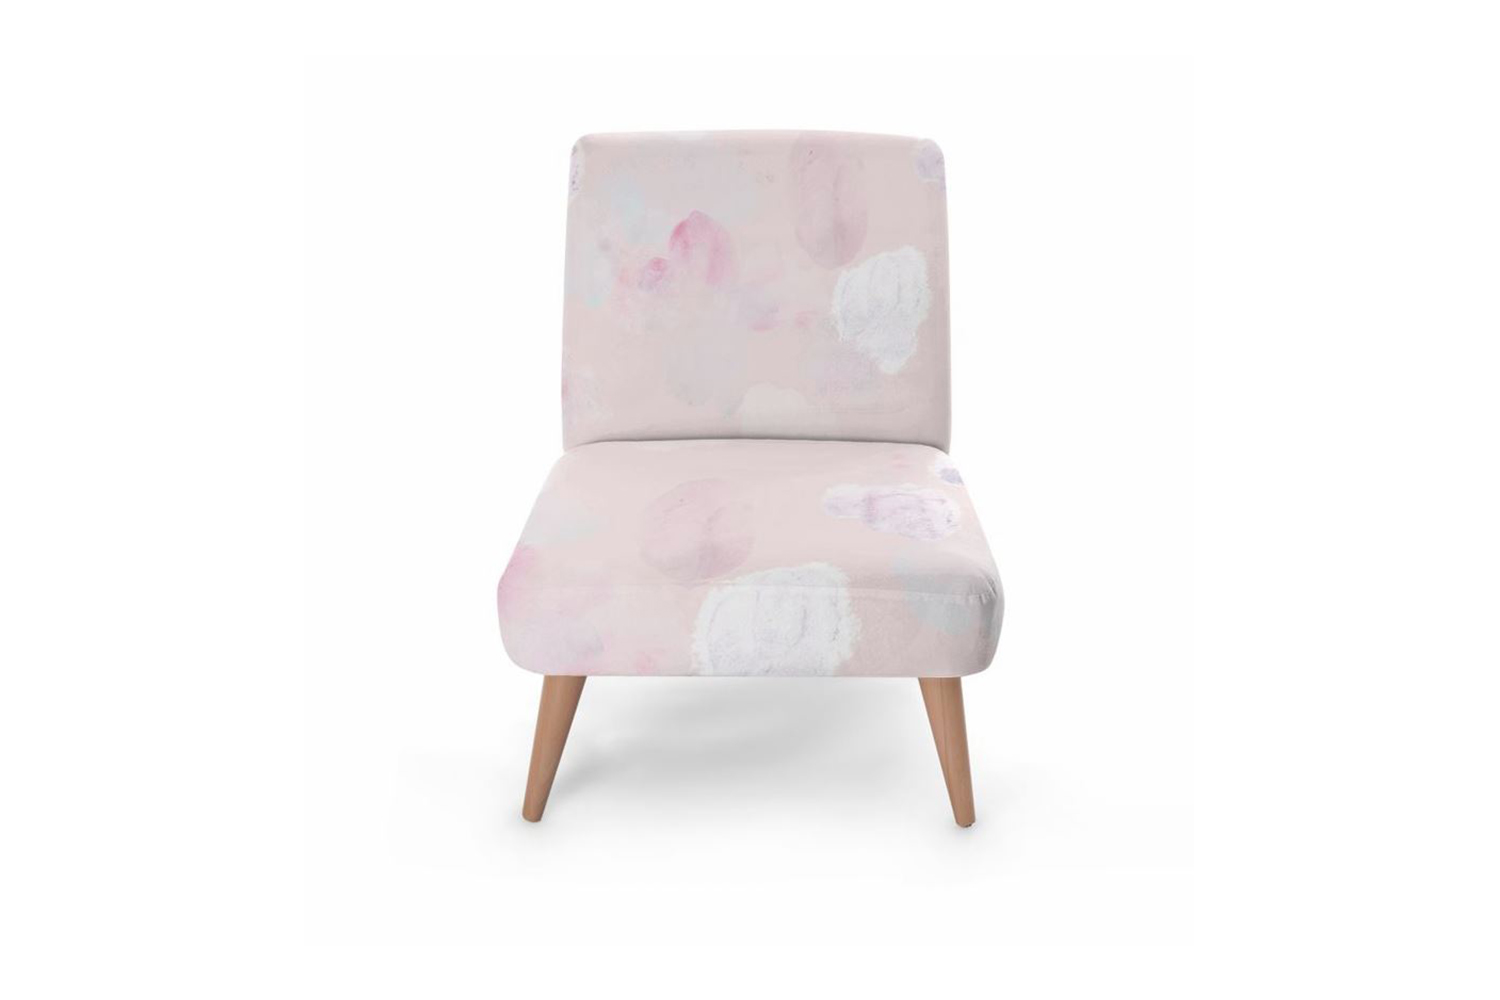 design textile organique pastel